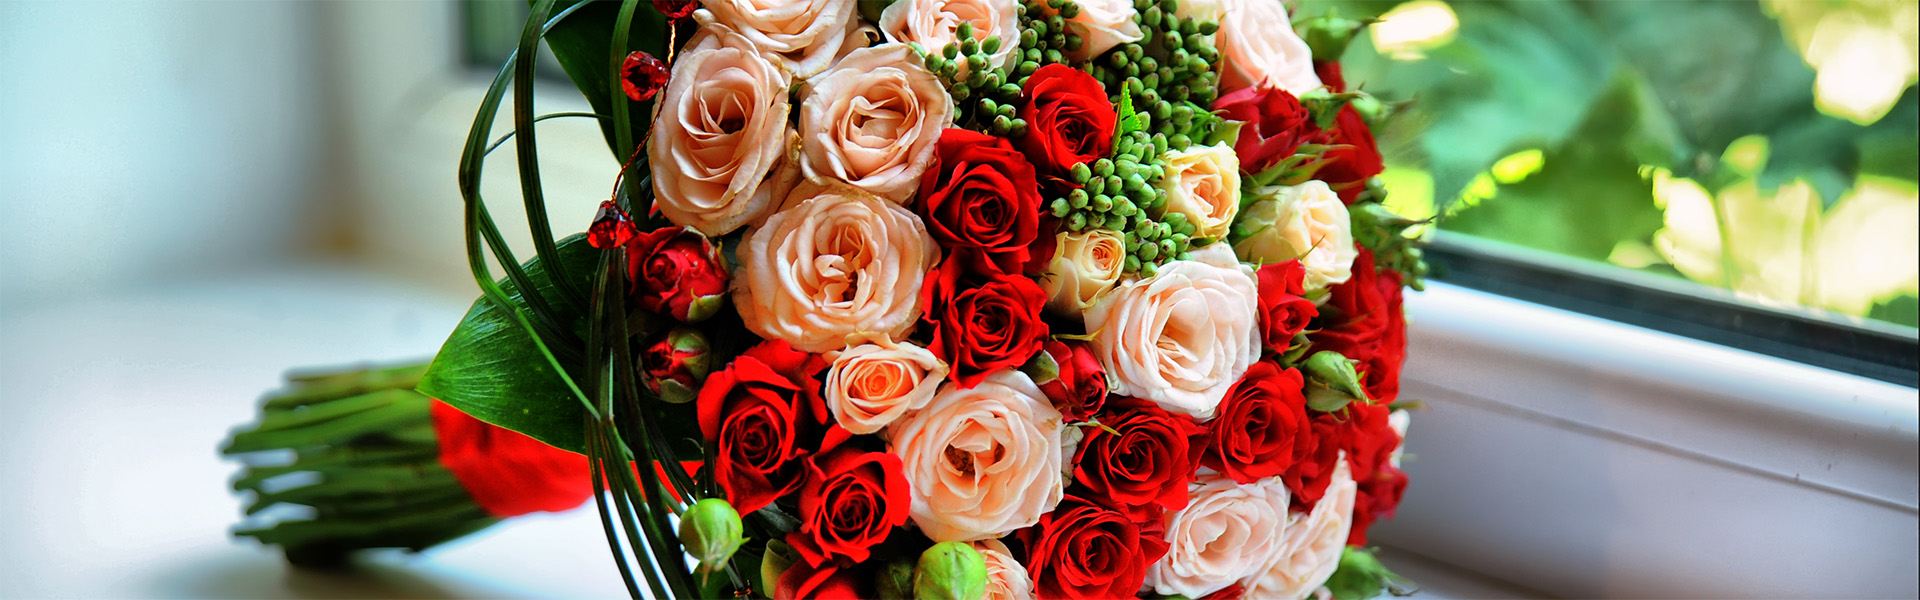 """<p data-aos=fade-up style=""""text-align:center""""><strong>It's so easy to make a woman happy</strong></p>  <p data-aos=fade-up style=""""text-align:center"""">New flower delivery - coming soon...</p>"""